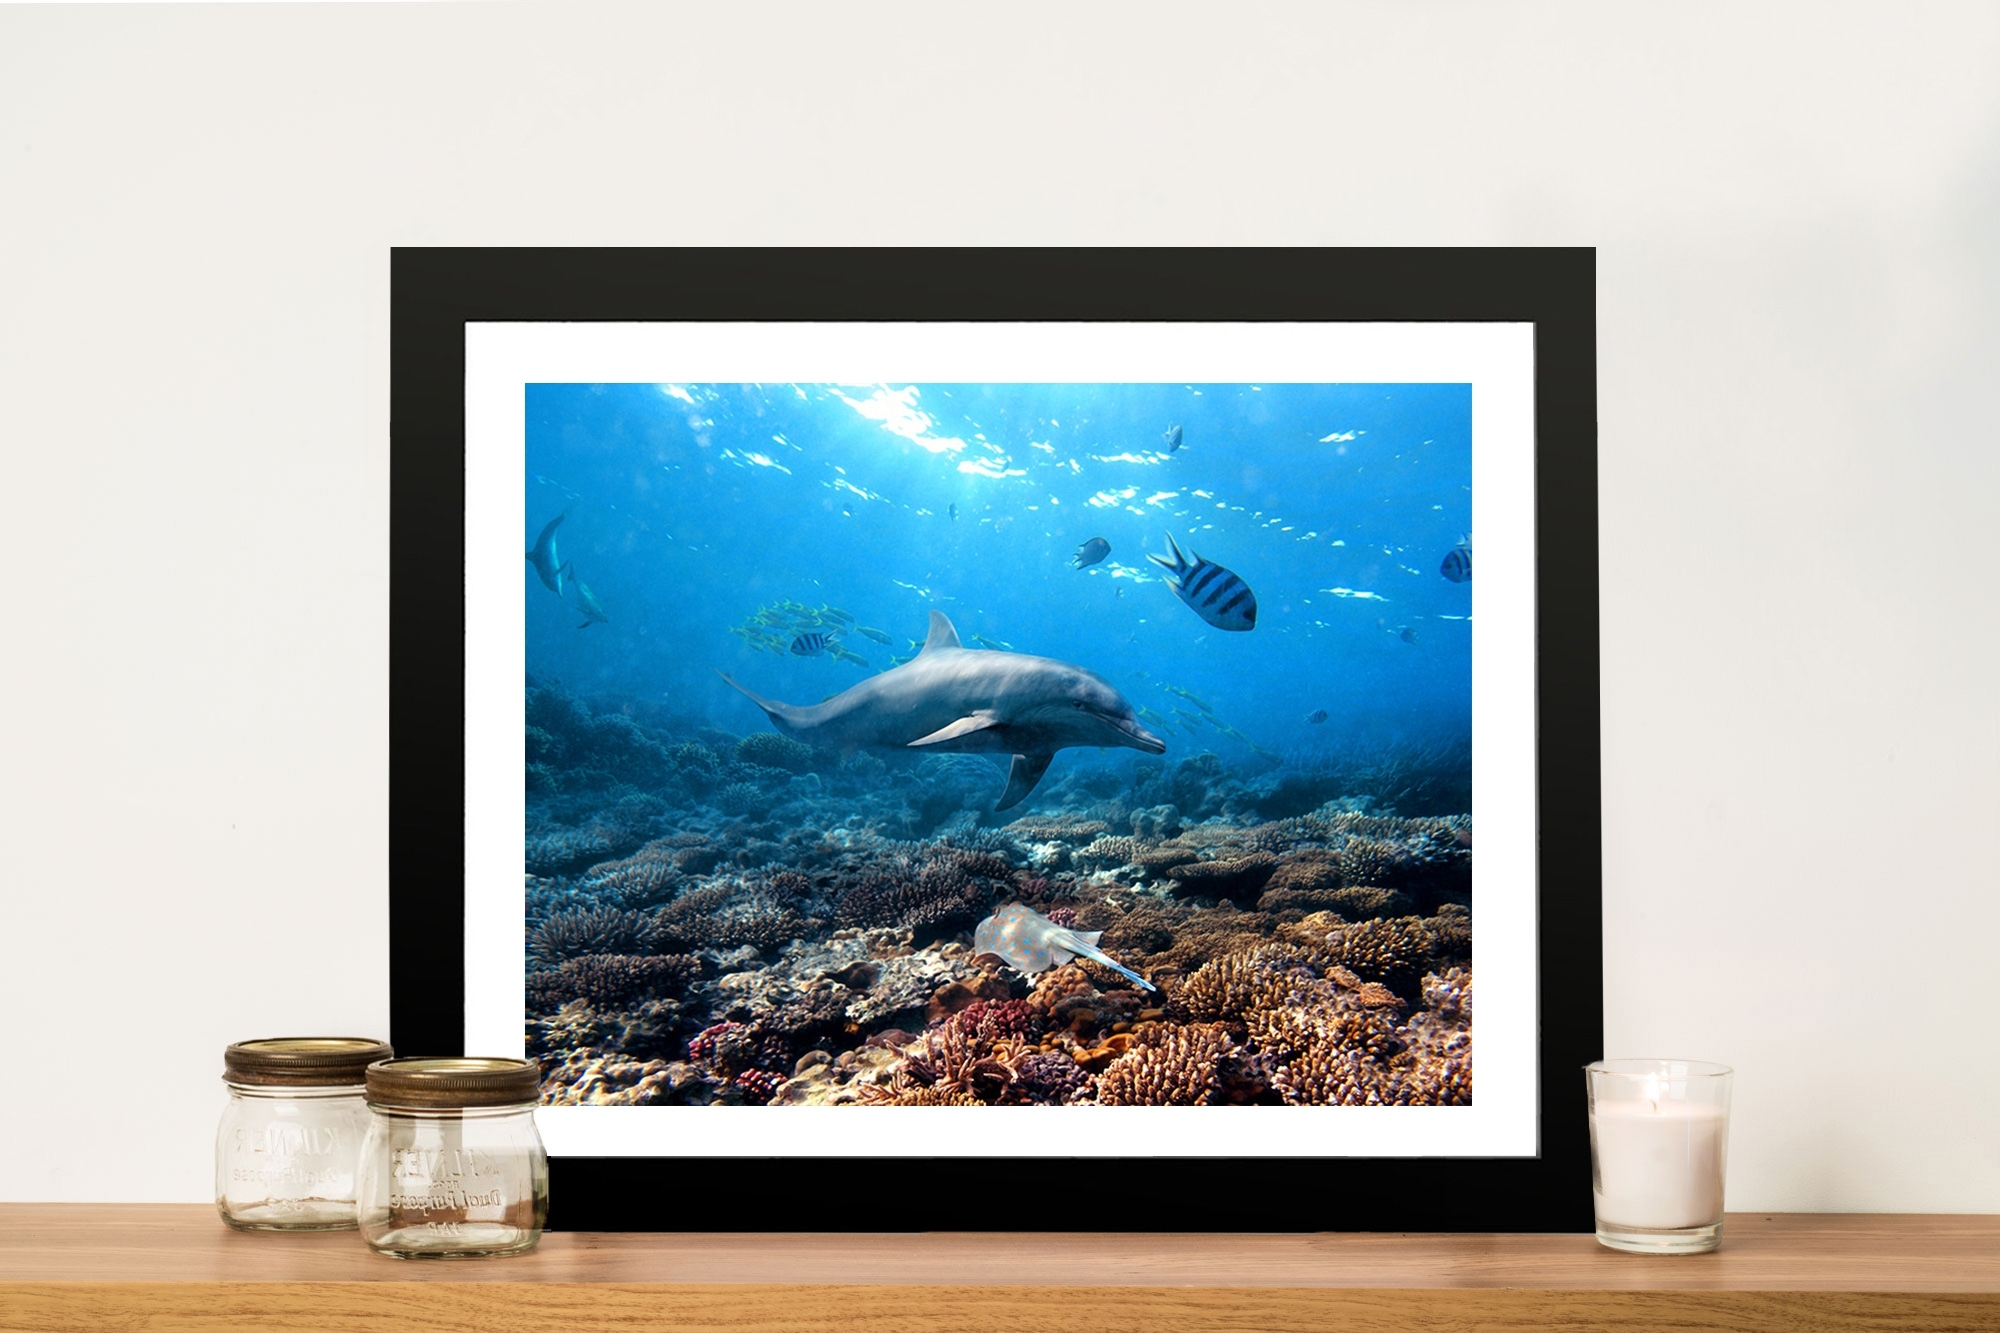 Newest Geelong Canvas Wall Art Inside Buy Dolphins Canvas Prints Geelong Melbourne Australia (View 11 of 15)